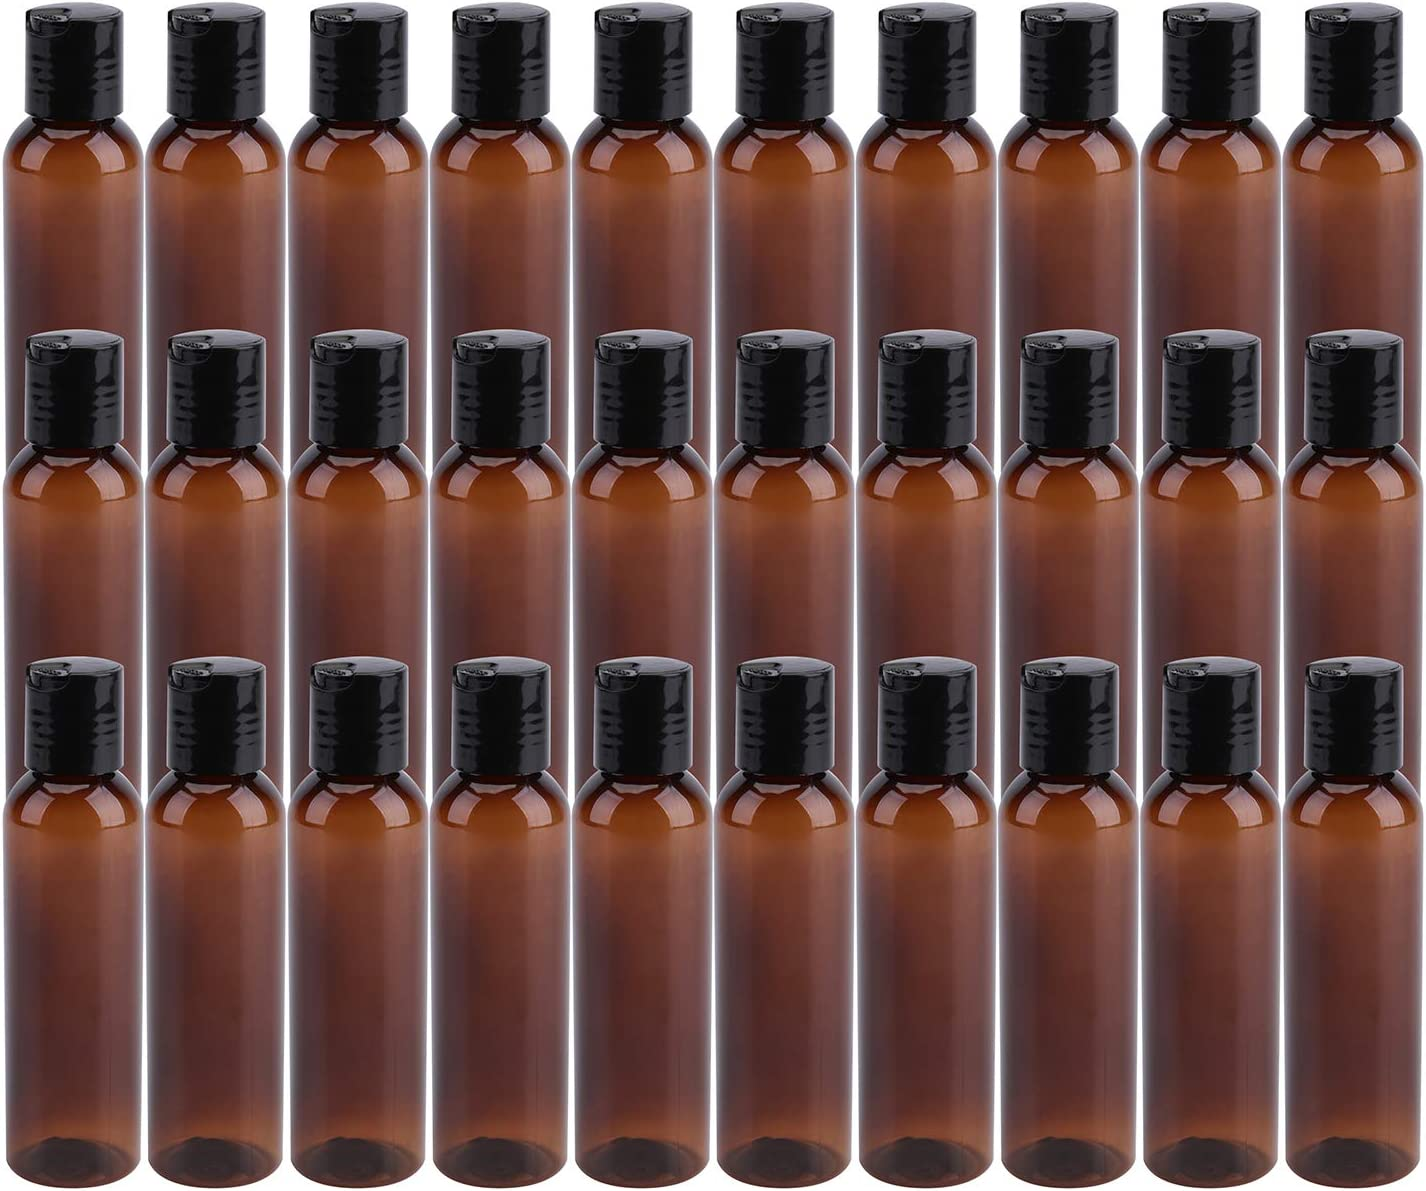 Bekith 30 Pack 4oz Plastic Squeeze Bottles with Disc Top Flip Cap, Empty Amber BPA-Free Refillable Containers For Shampoo, Lotions, Liquid Body Soap, Creams